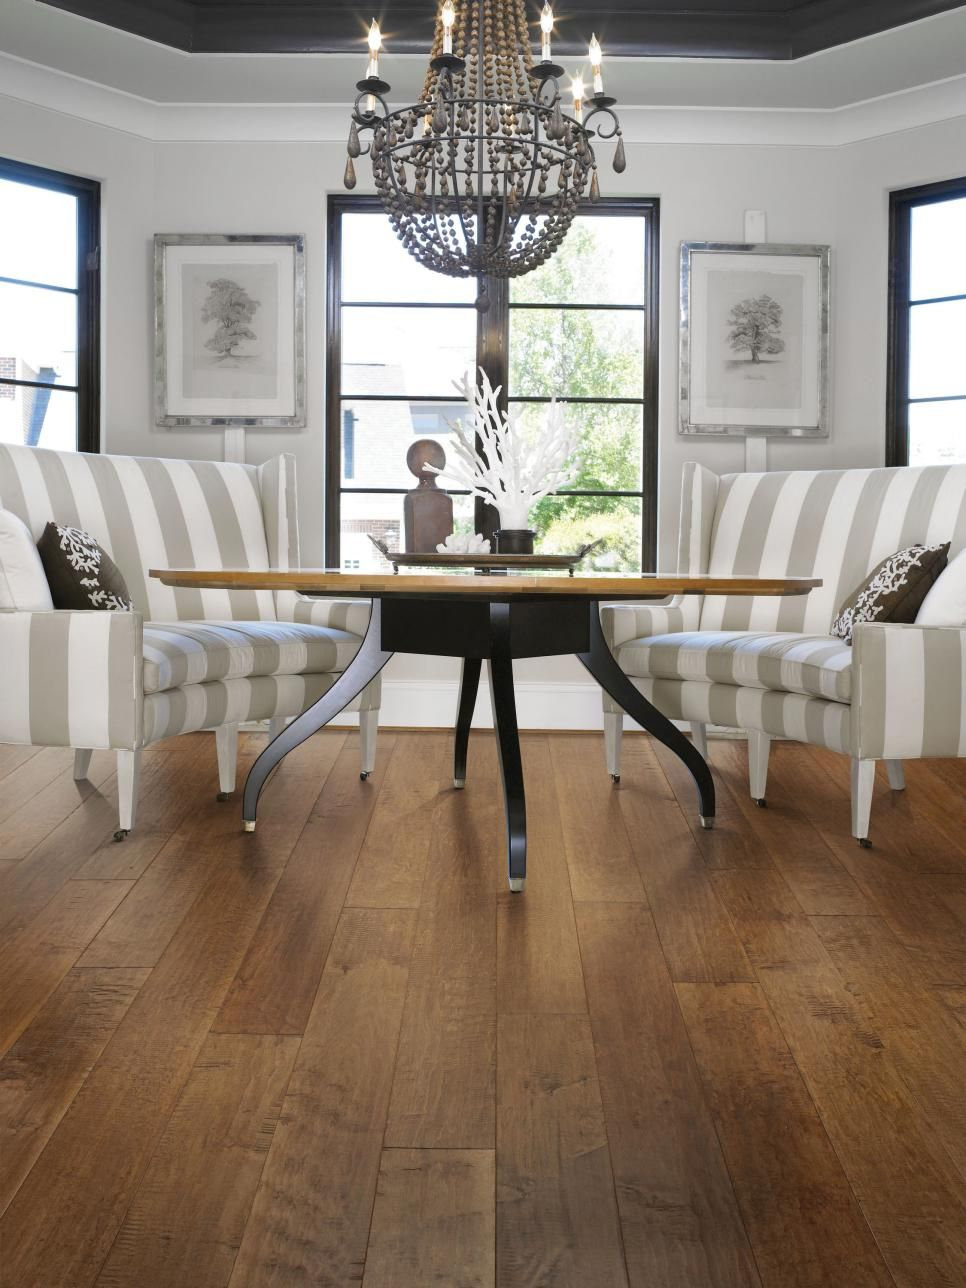 Good Engineered Hardwood Is A Great Choice For Open Kitchen/dining Spaces. This  Floor Uses Approximately 50 Percent Less Harvested Wood Than Conventional  ...